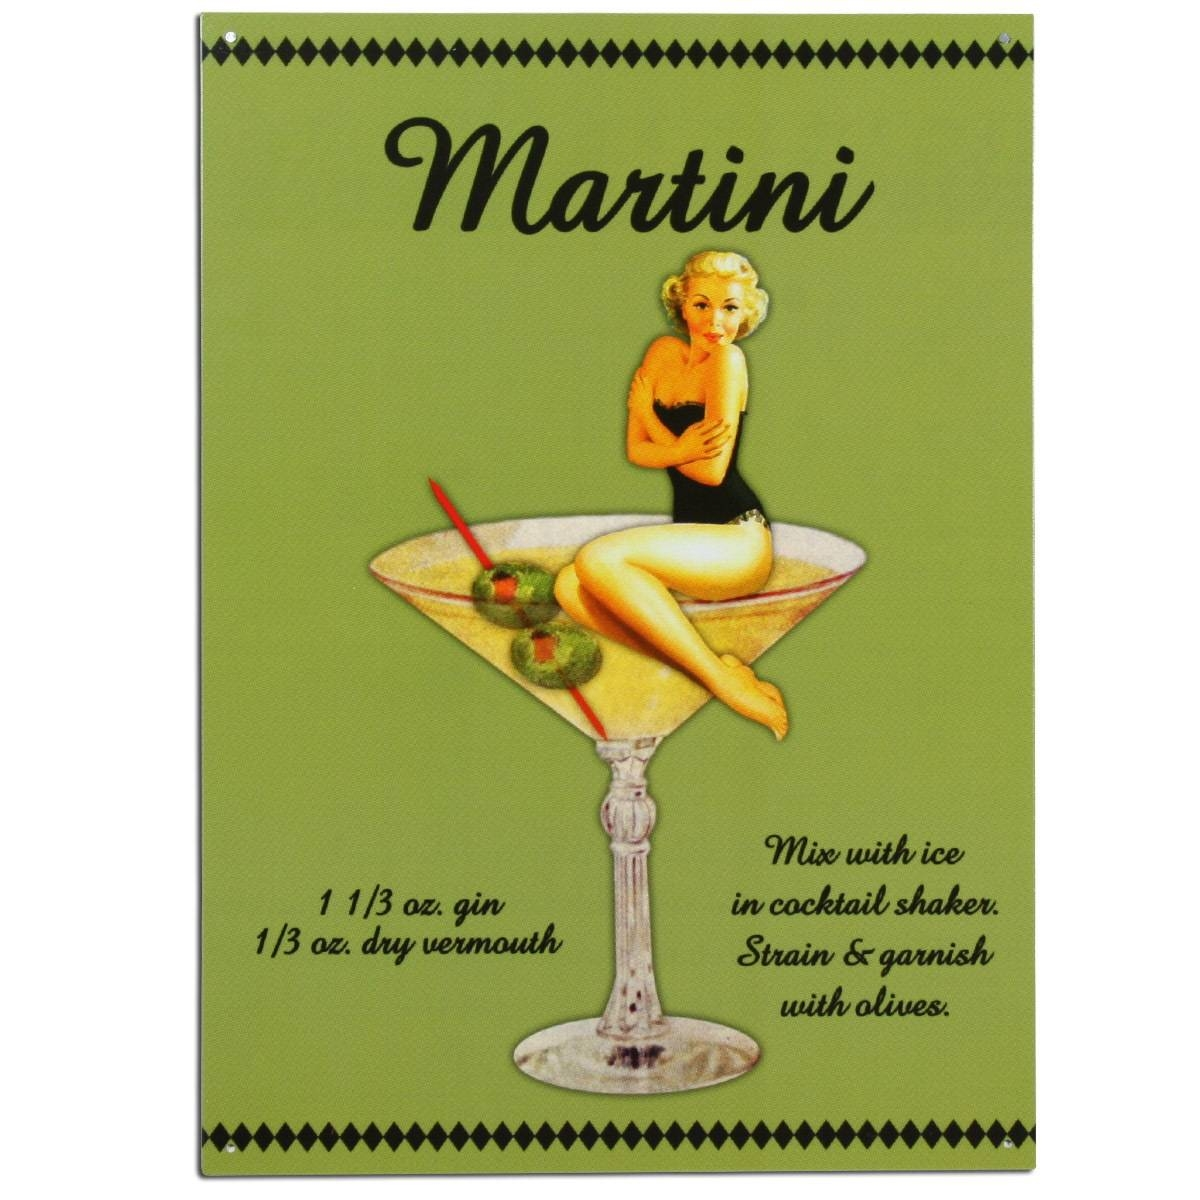 Martini Cocktail Recipe Pinup Girl Metal Sign | Bar Decor Intended For Recent Martini Metal Wall Art (View 21 of 30)